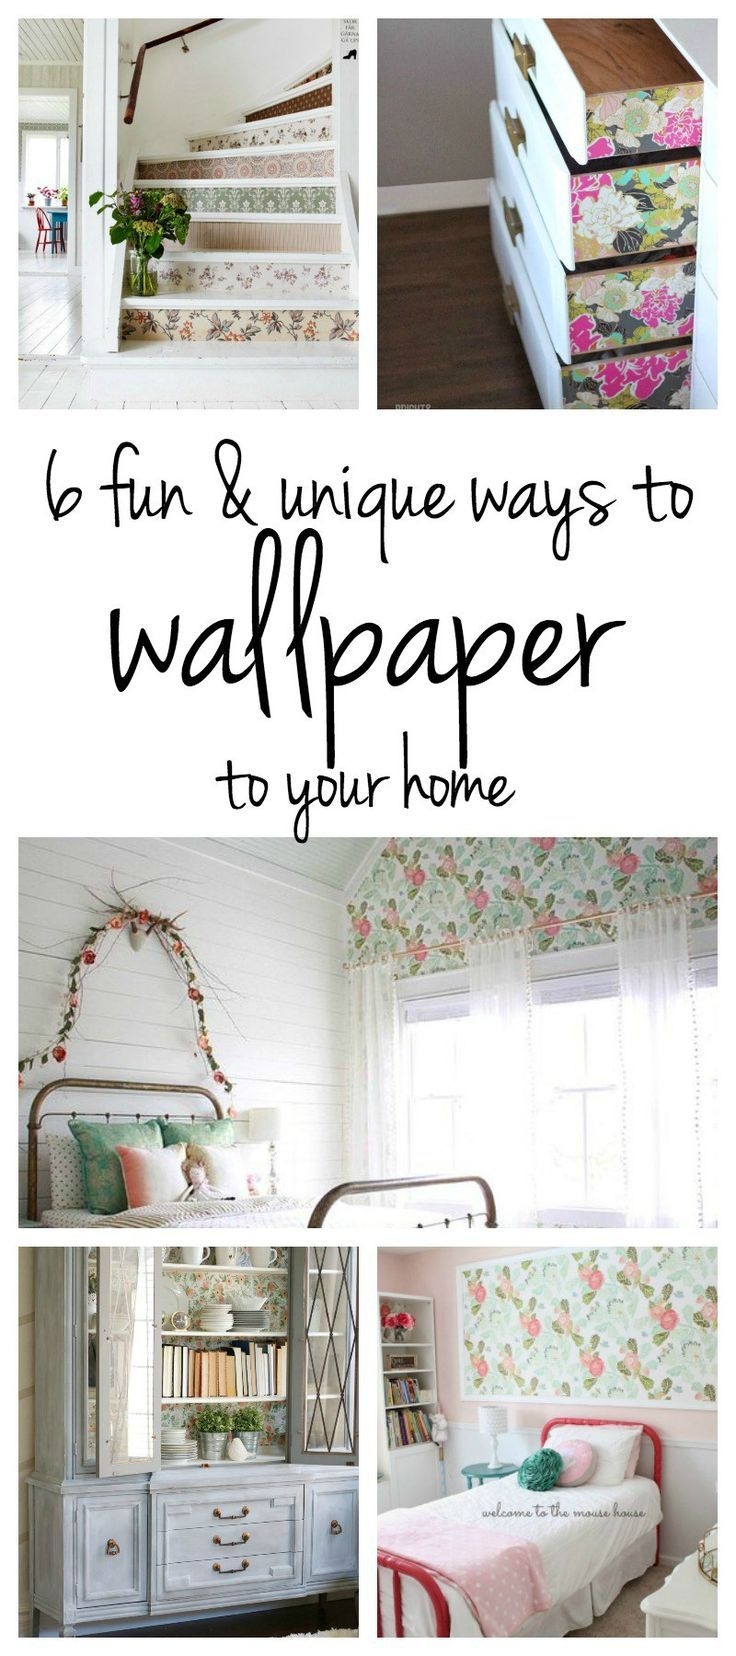 1000 ideas about wallpaper accent walls on pinterest accent walls silver wallpaper and comic. Black Bedroom Furniture Sets. Home Design Ideas